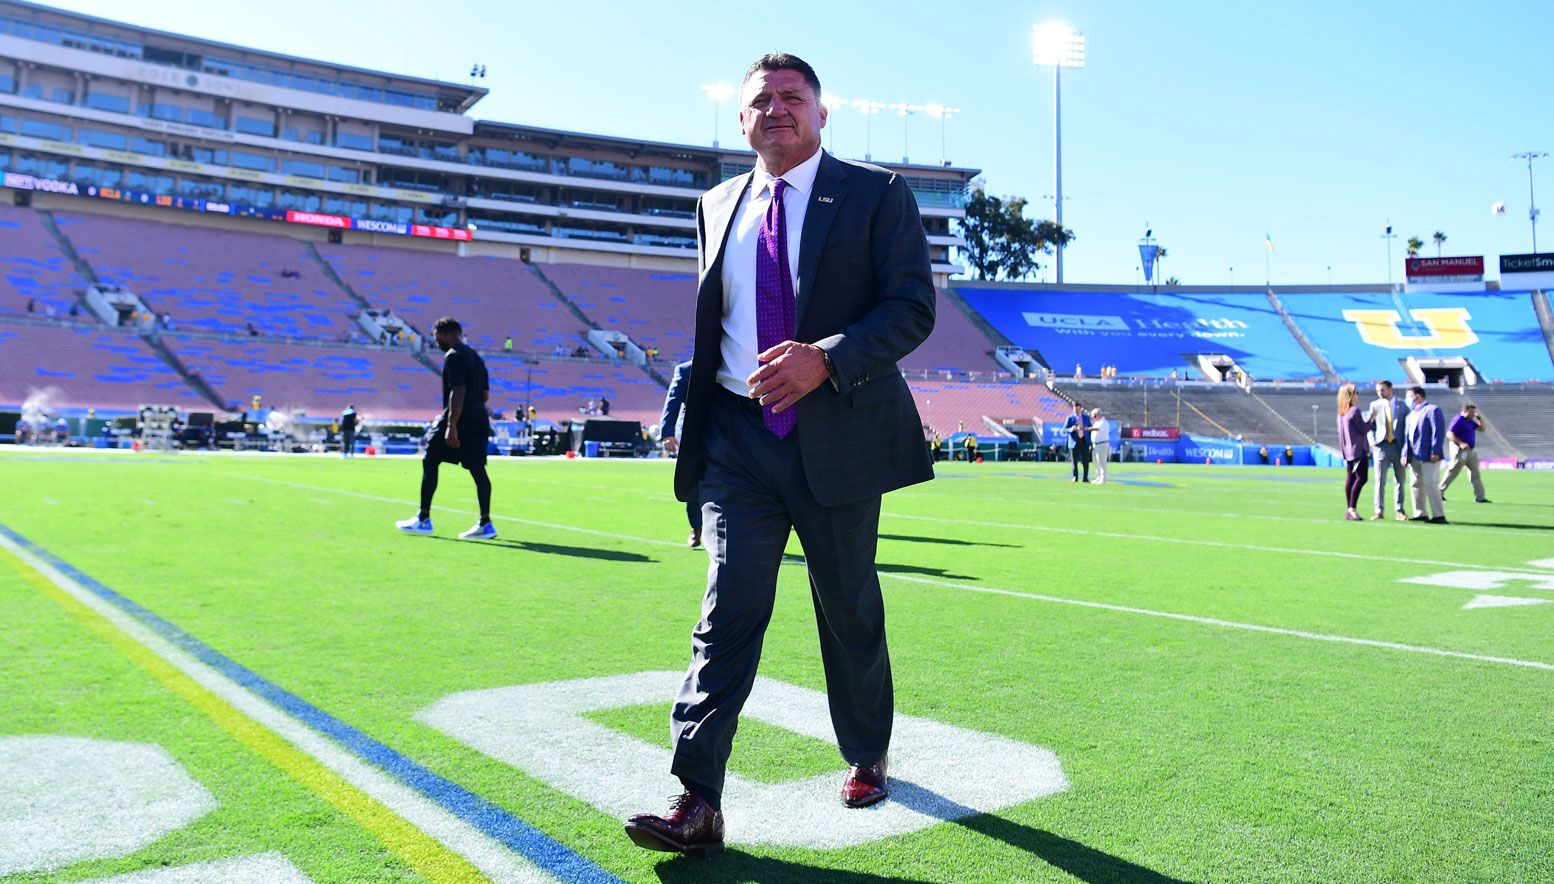 Ed Orgeron on the sideline in the game against UCLA